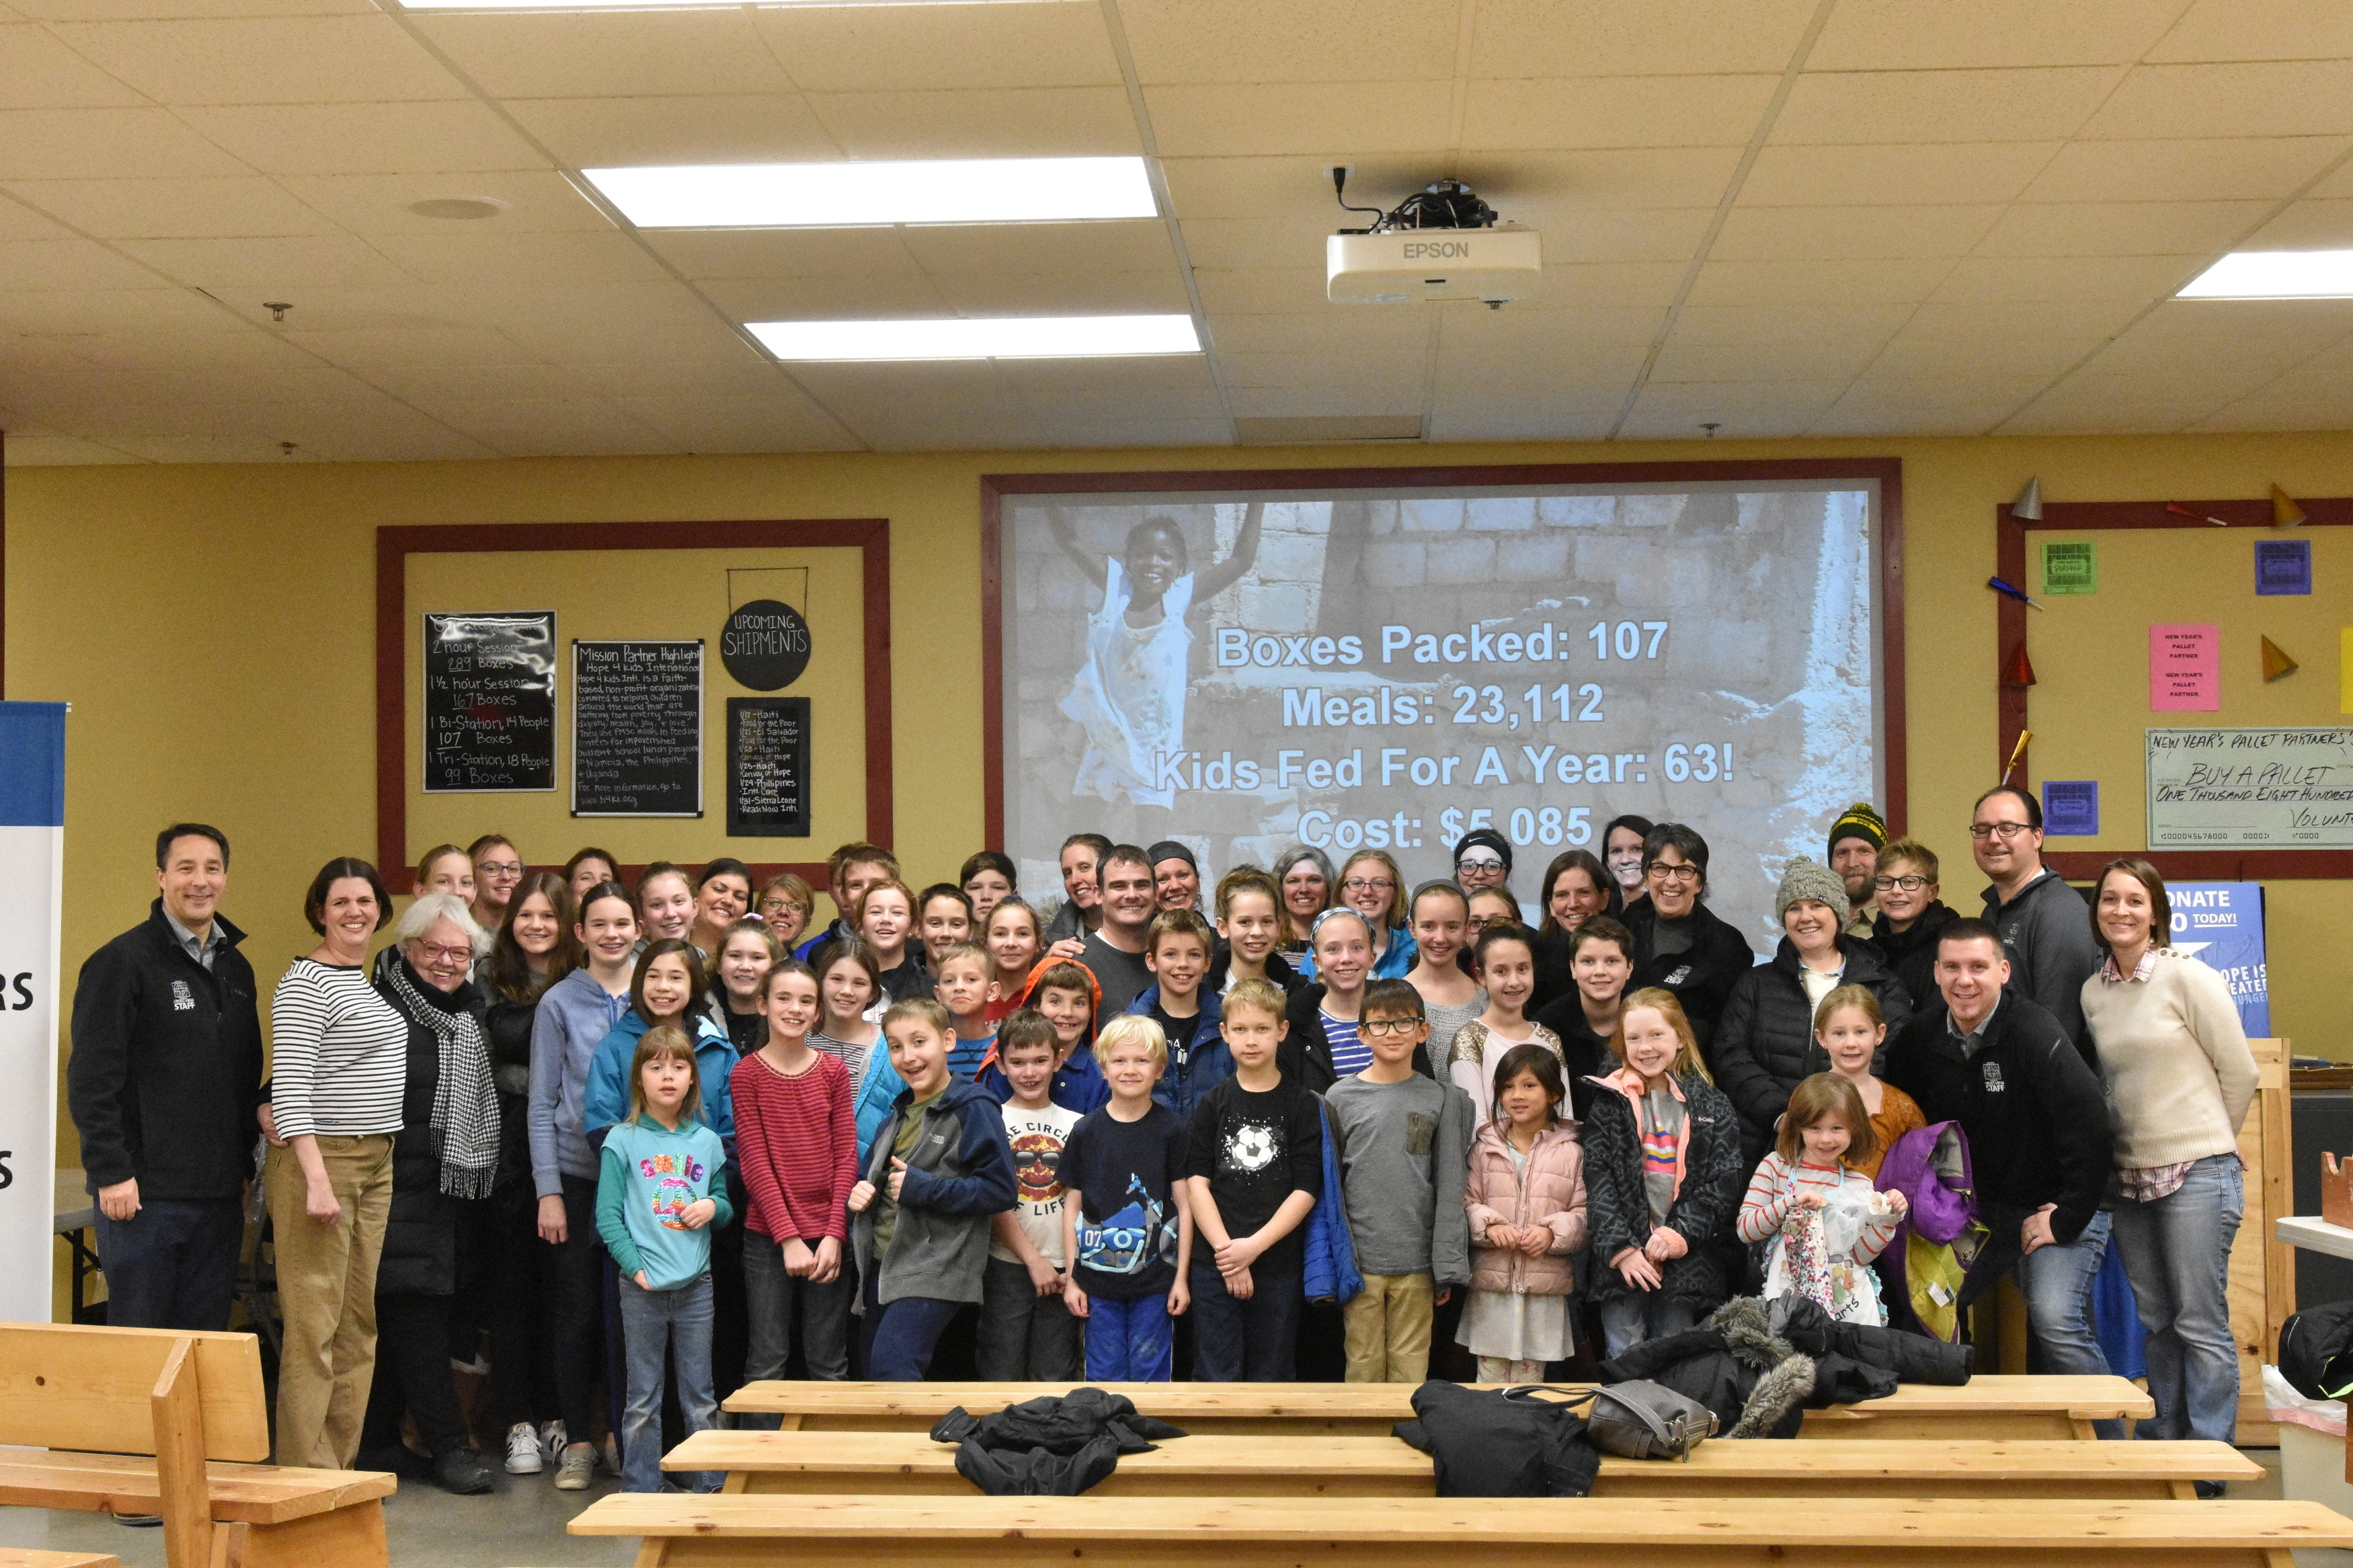 About 30 Cross View members at Feed My Starving Children